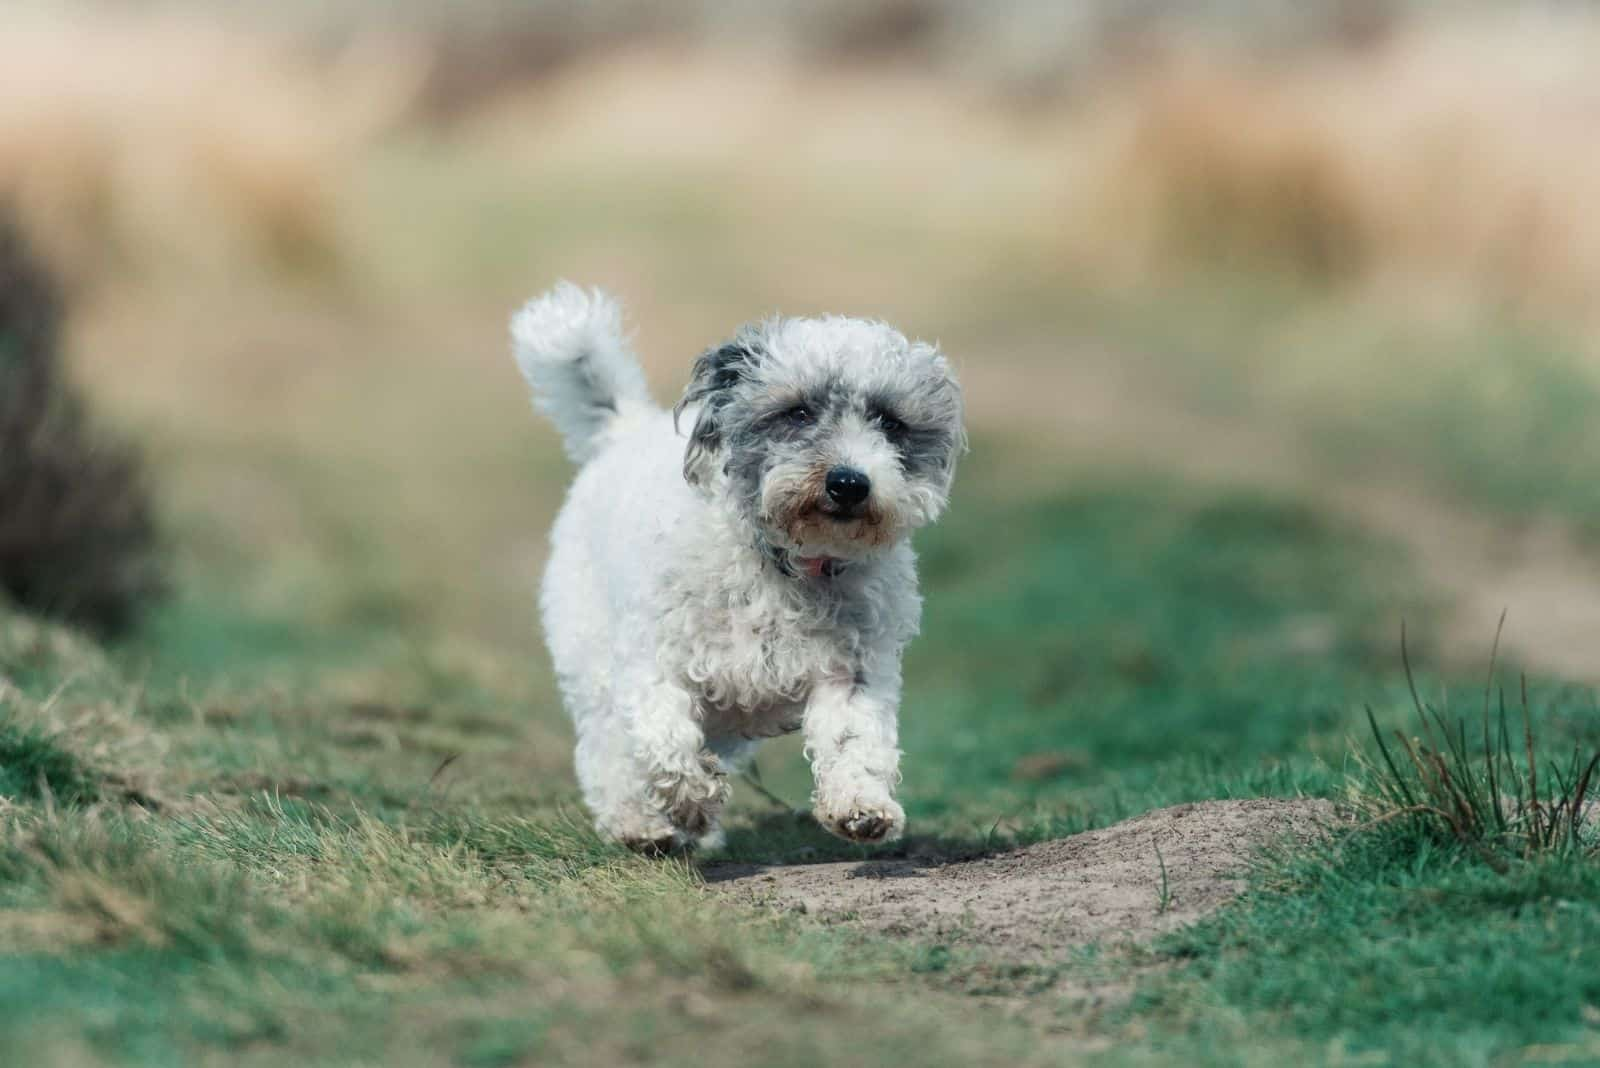 walking poodle mix breed in the summertime of UK countryside